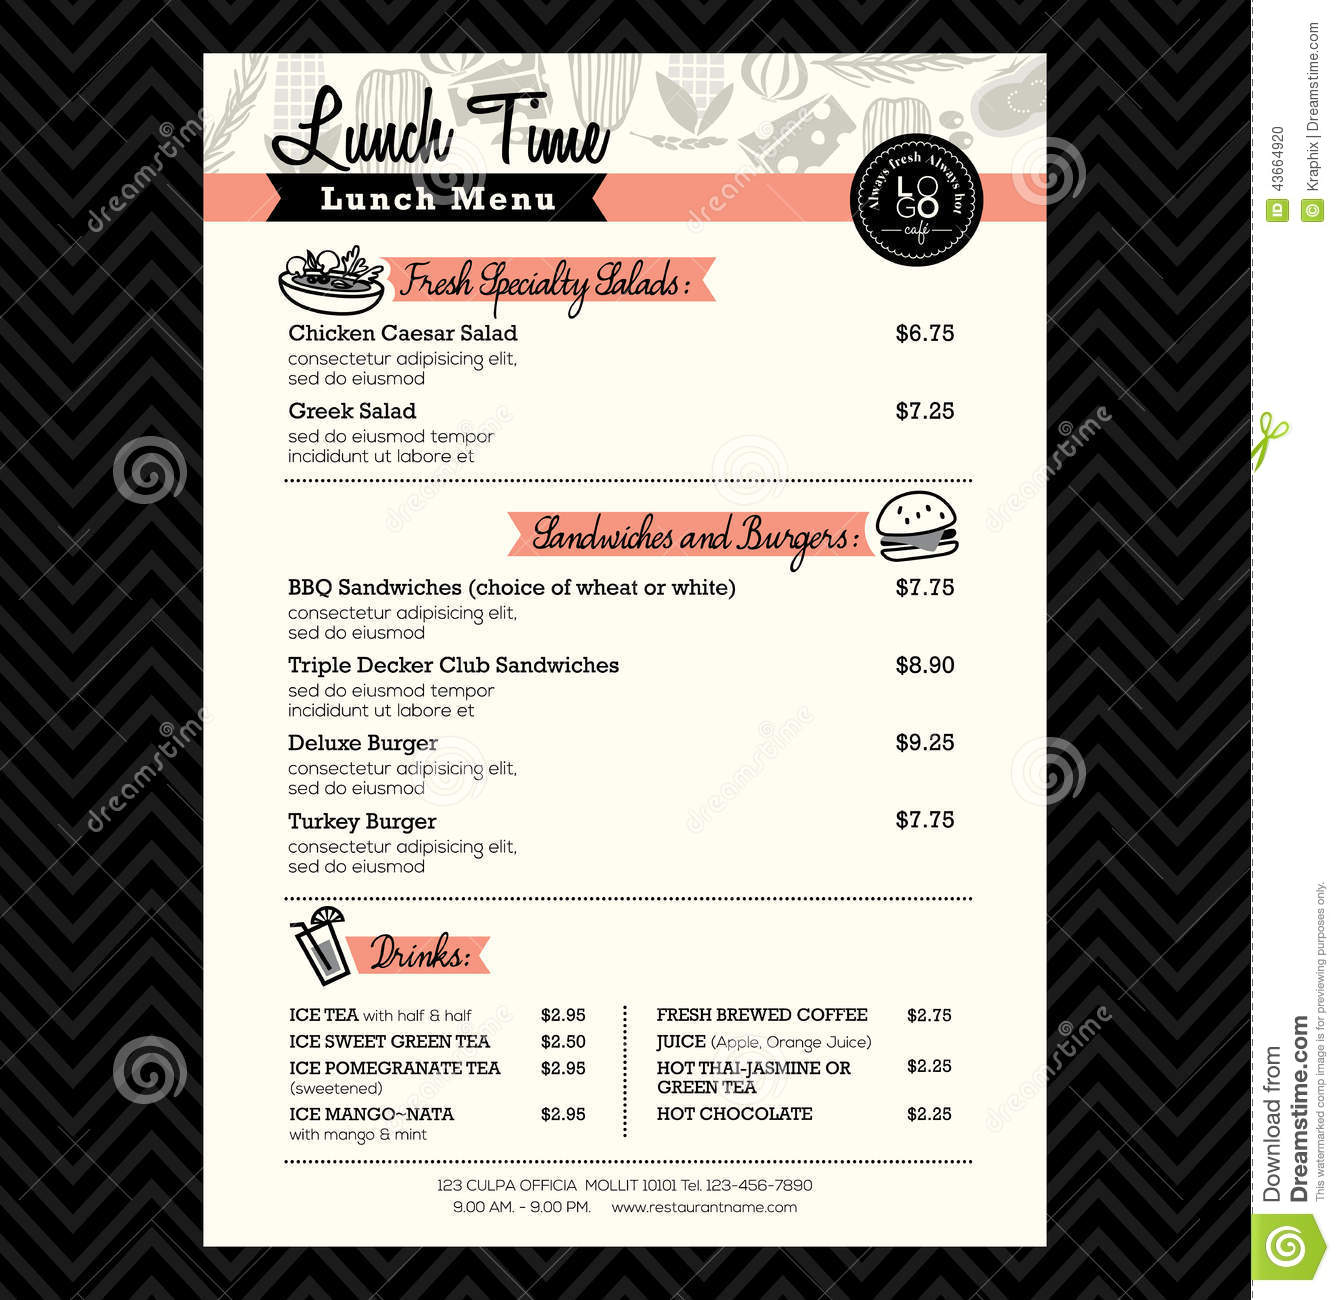 Restaurant lunch menu design template layout stock vector for Sandwich shop menu template